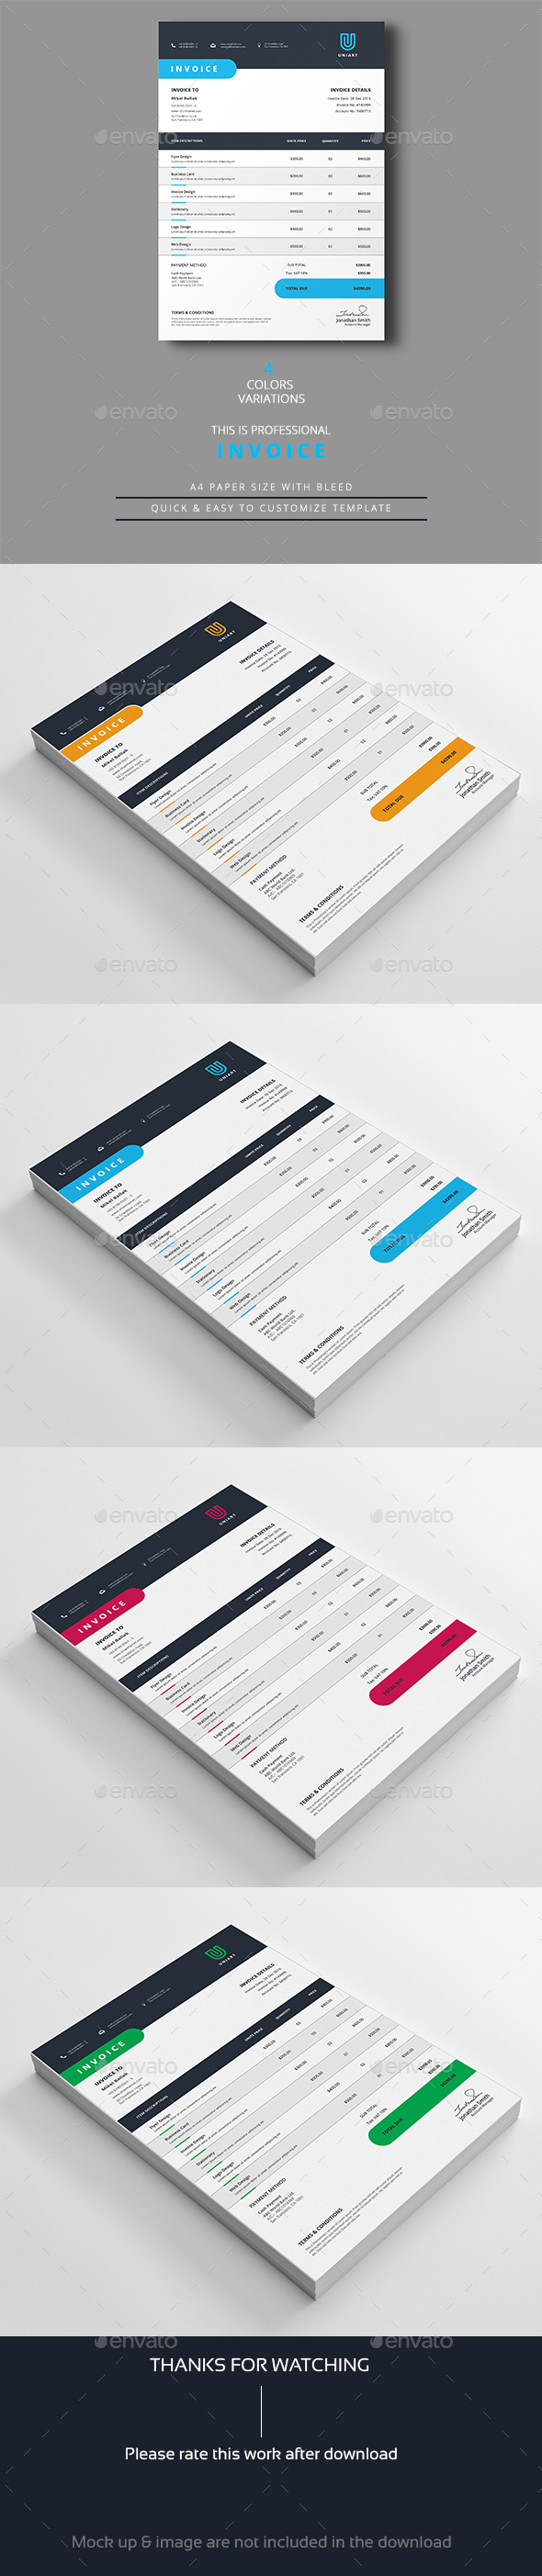 Invoice by DesignsTemplate Corporate Invoice Template Use